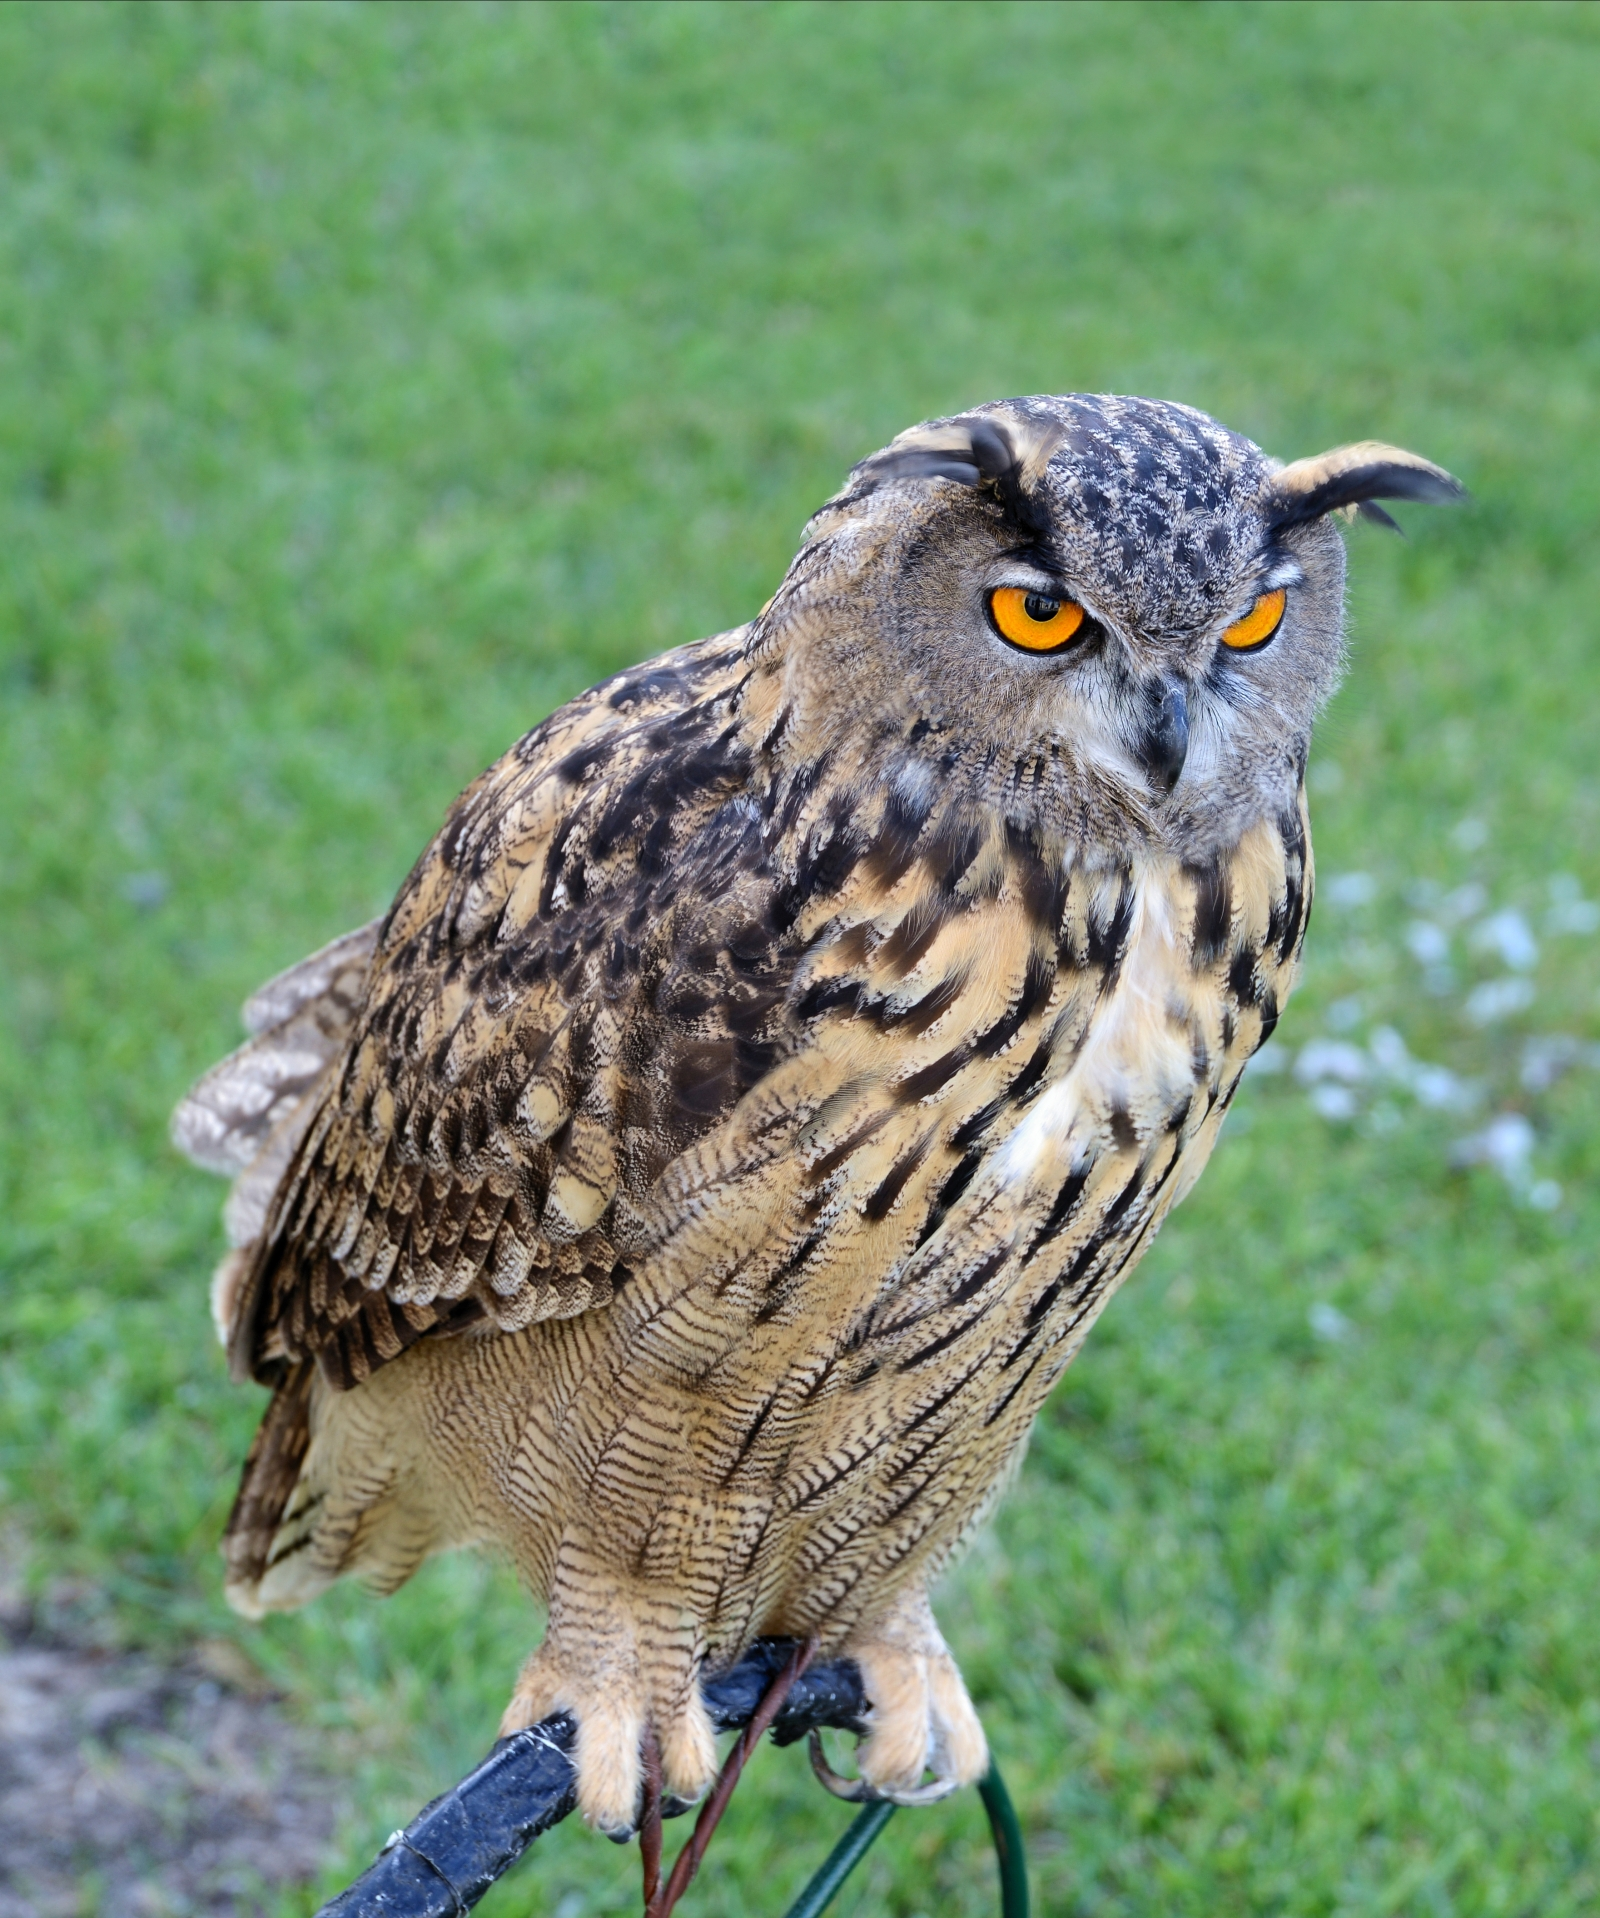 An eagle owl is attacking residents.